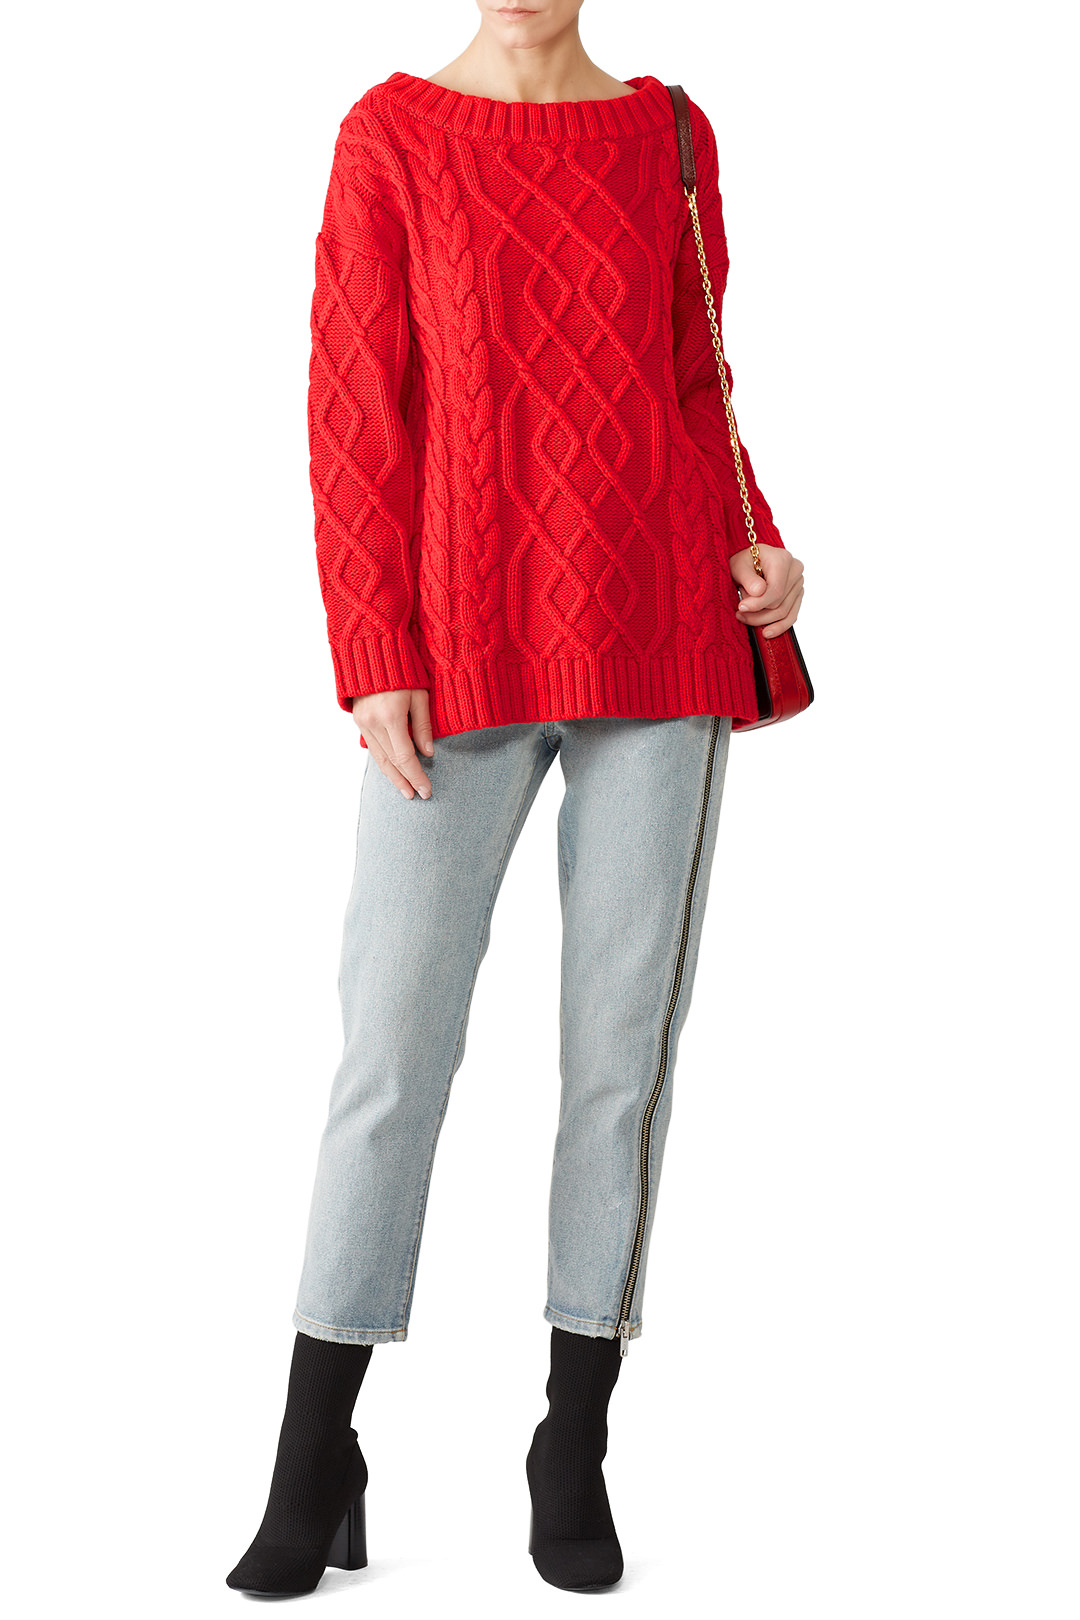 The Jetset Diaries Red Ember Sweater - This looks cozy and I think I want to rent it soon!